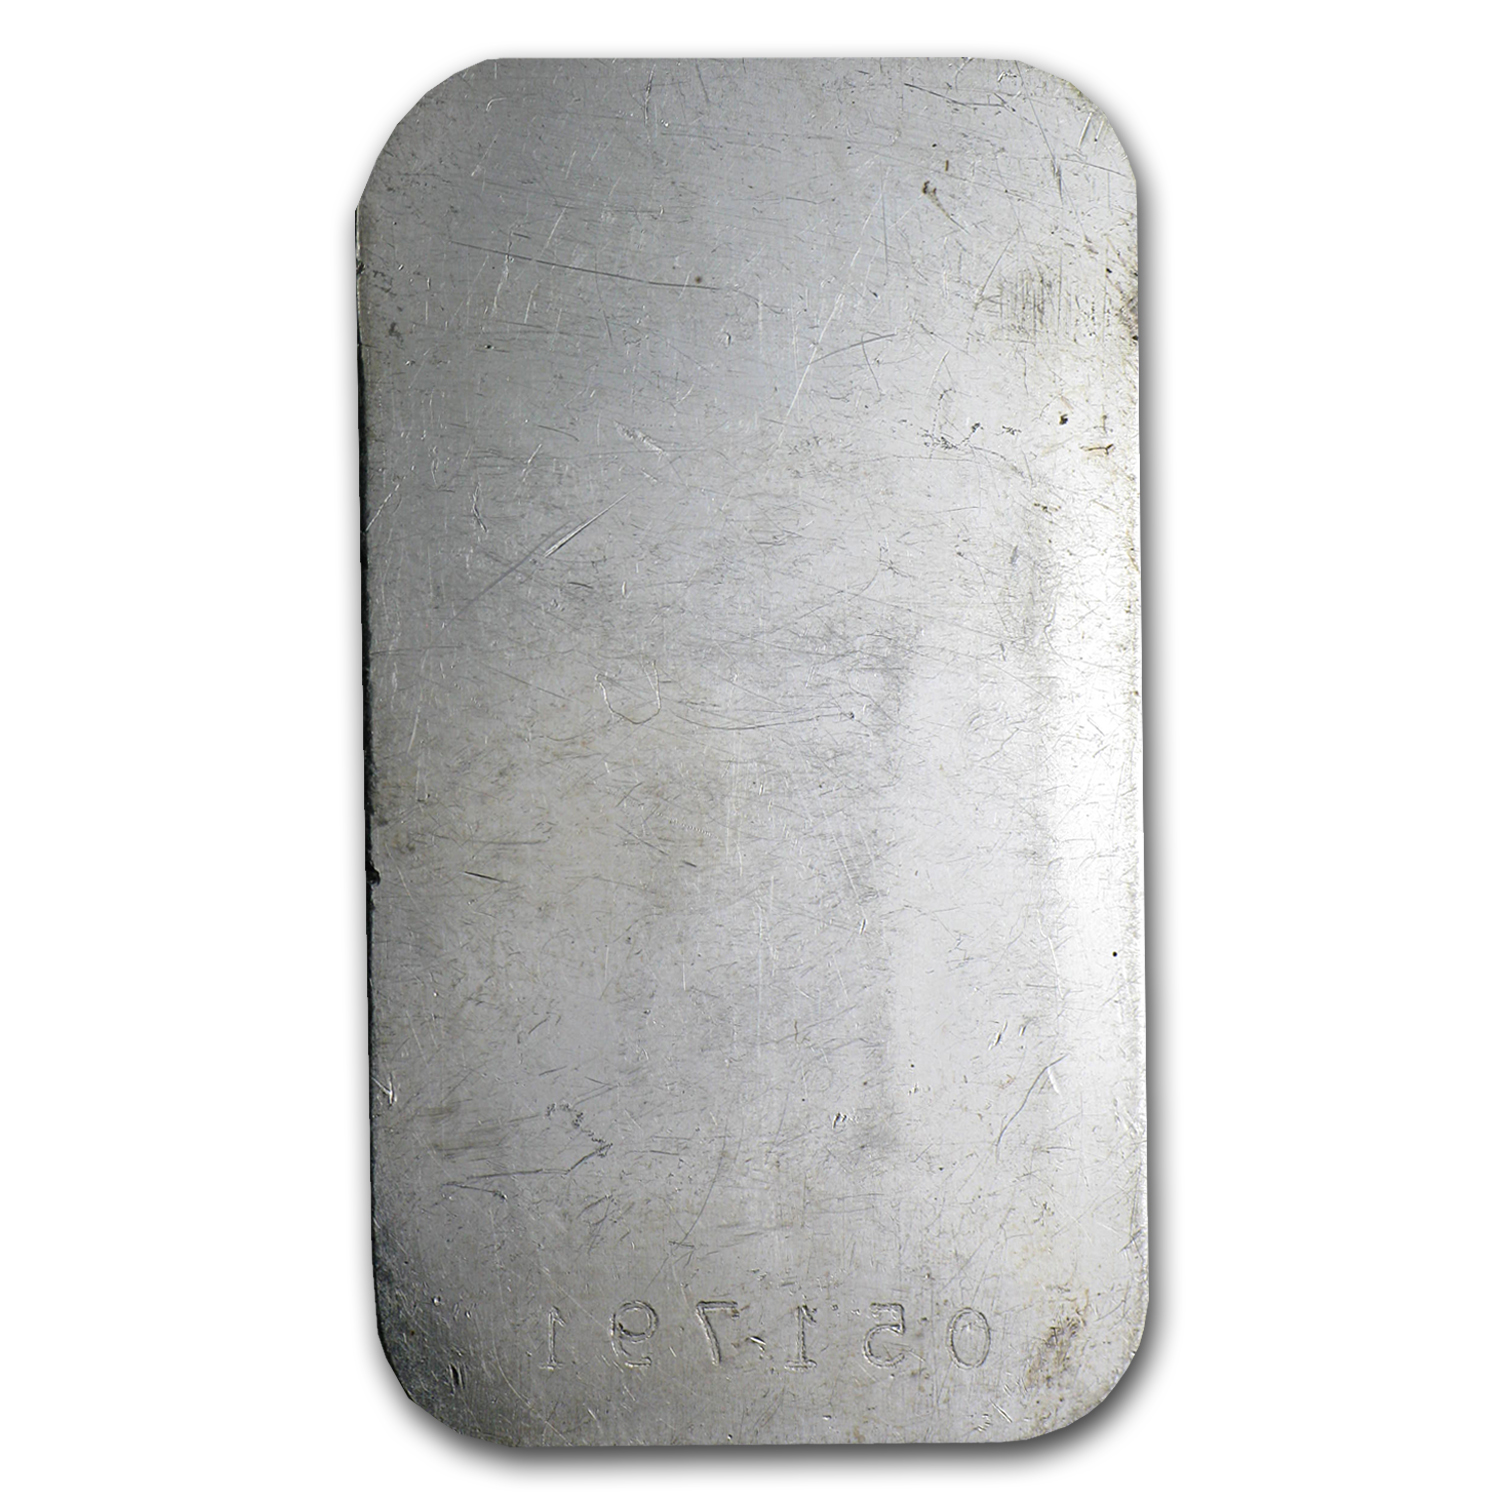 1 oz Silver Bar - Engelhard (Maple, Smooth, No Border)